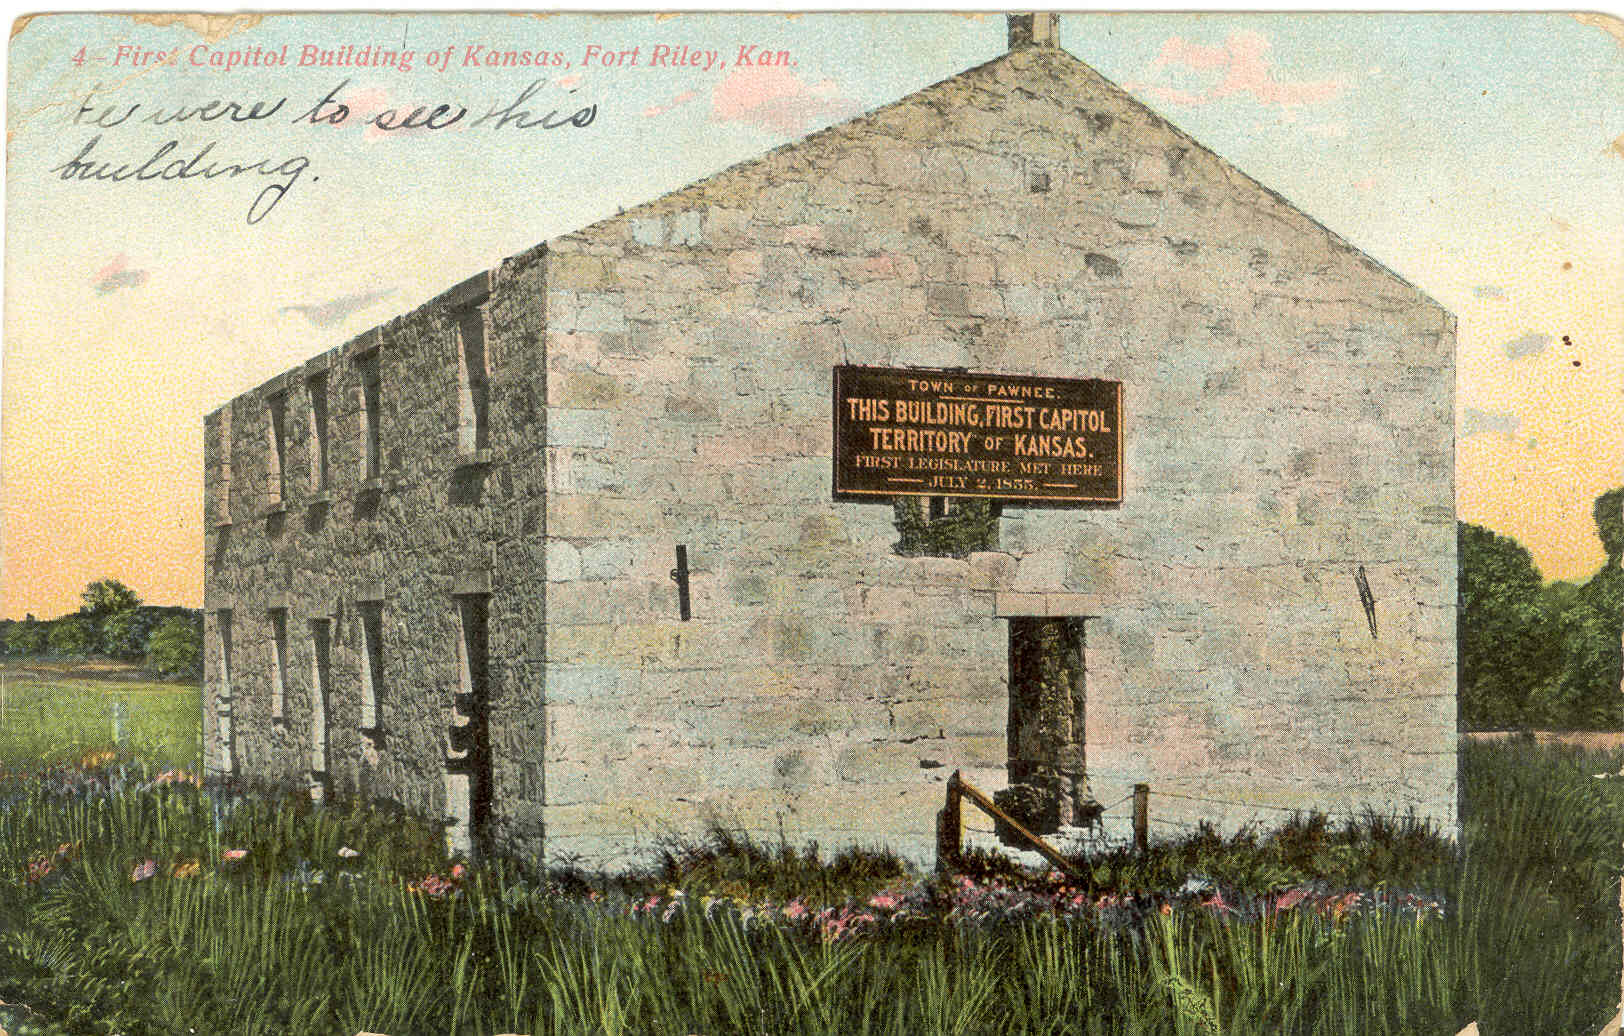 Postcard showing the first Territorial Capitol Building of Kansas at Pawnee.